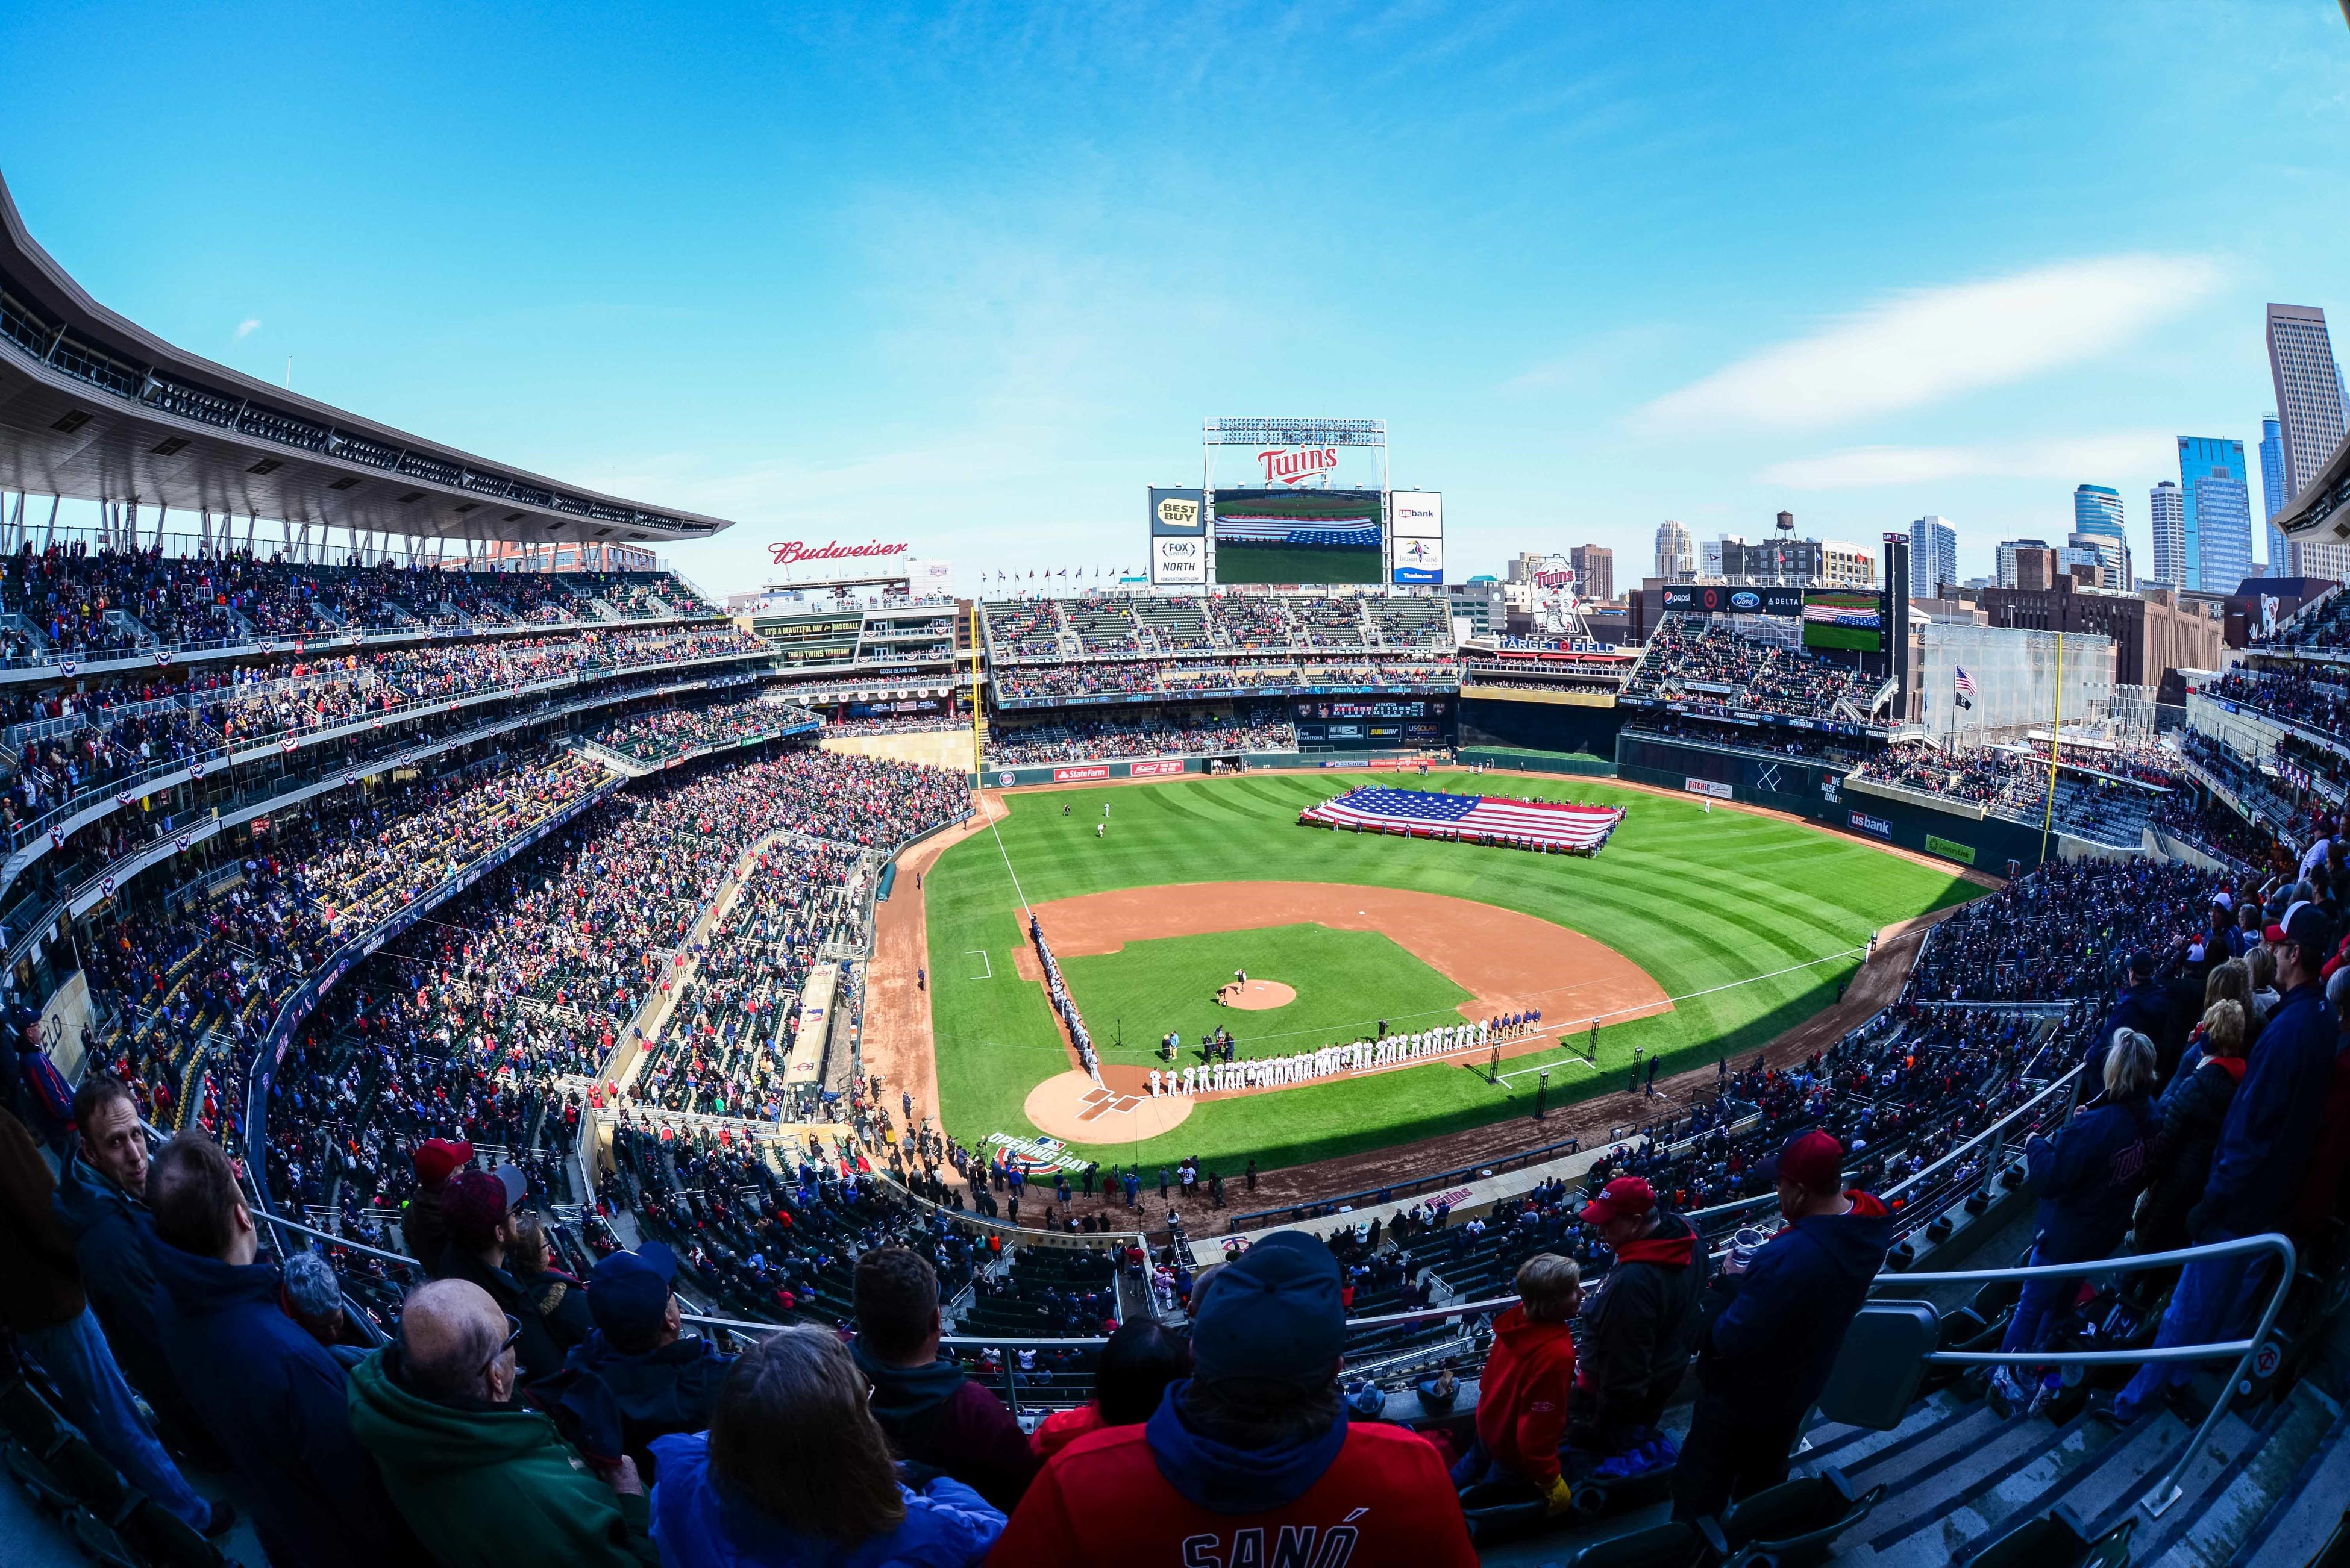 Centurylink Christmas 2020 A Christmas World Series? Three Possible Outcomes for the 2020